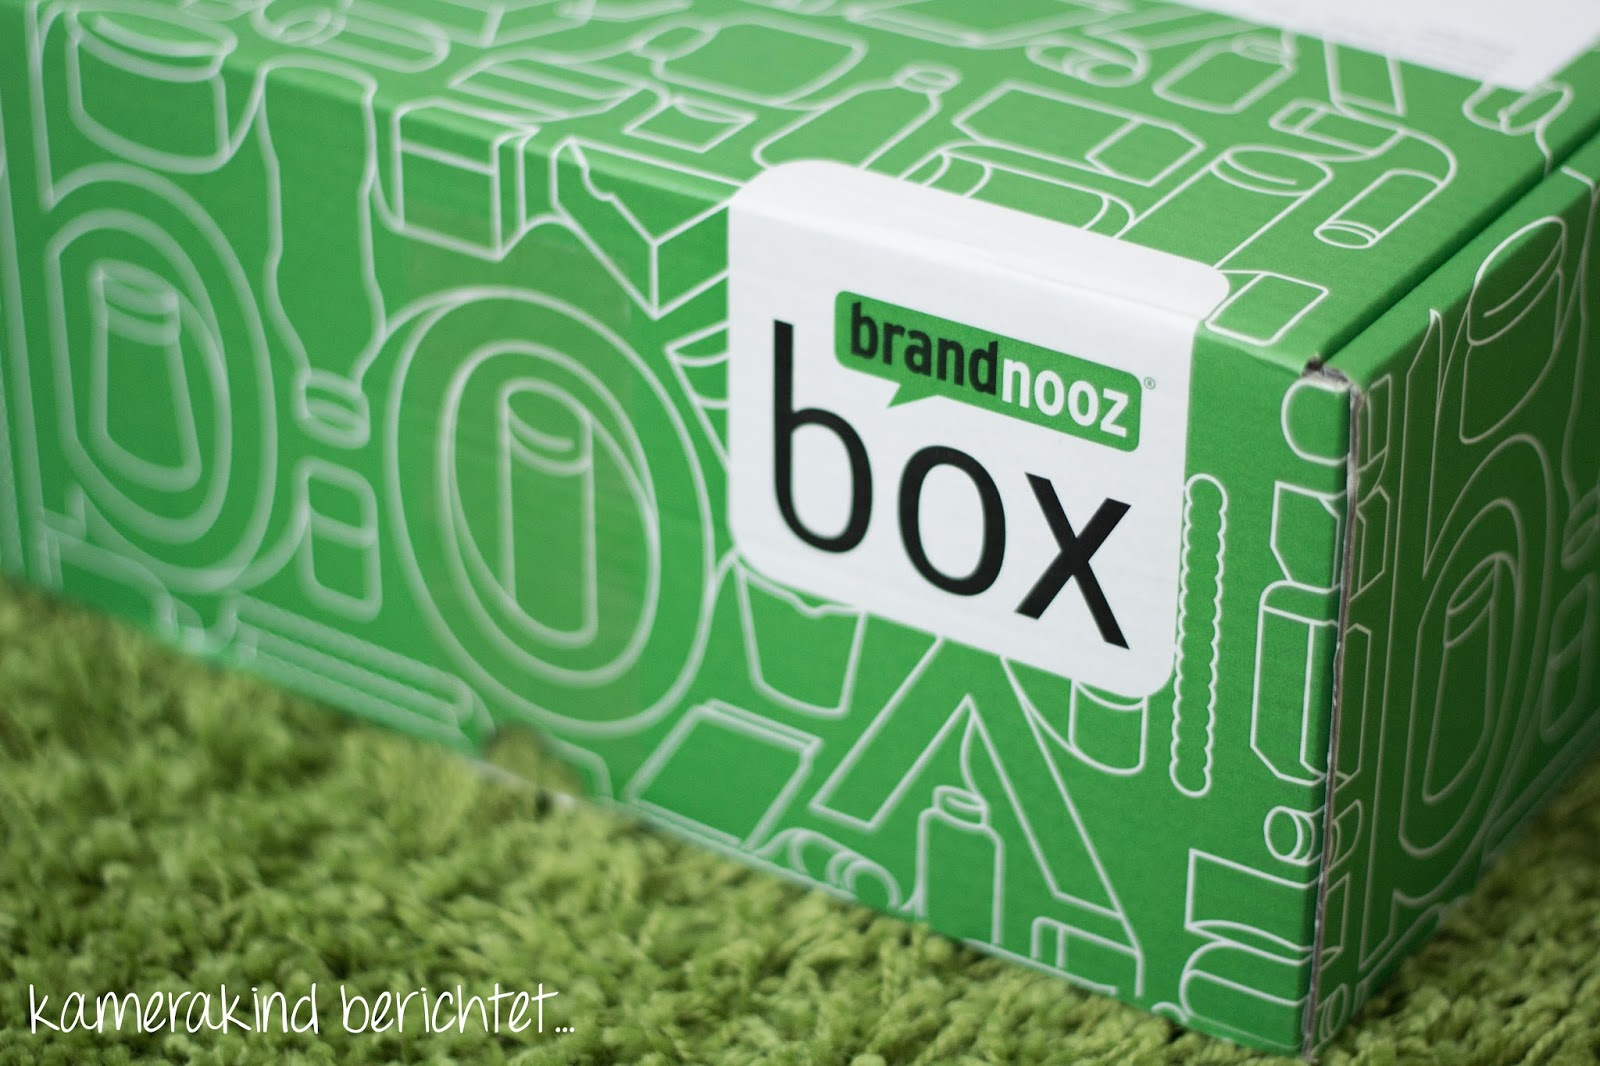 Unboxing Brandnooz Box